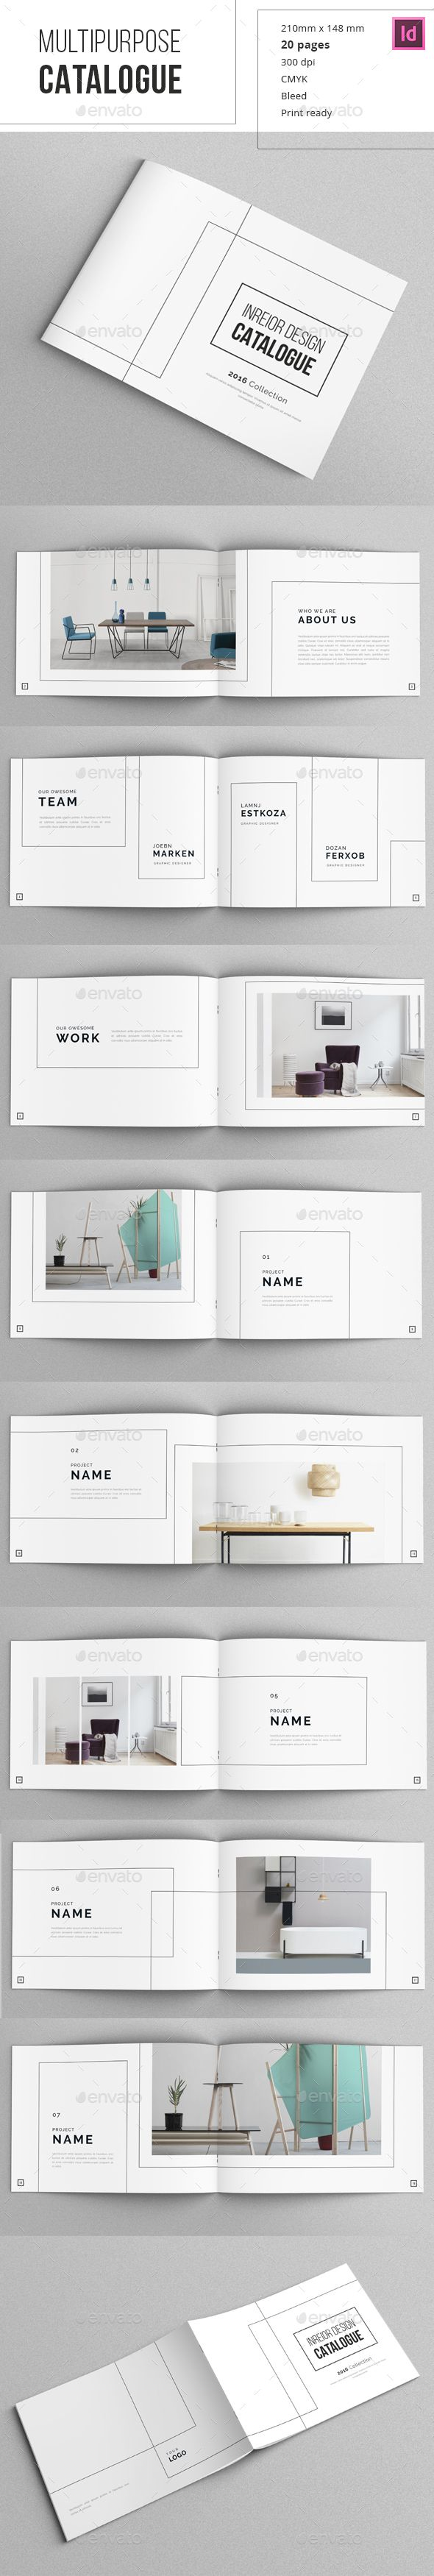 Minimal Indesign Catalogue | Minimal, Template and Catalog